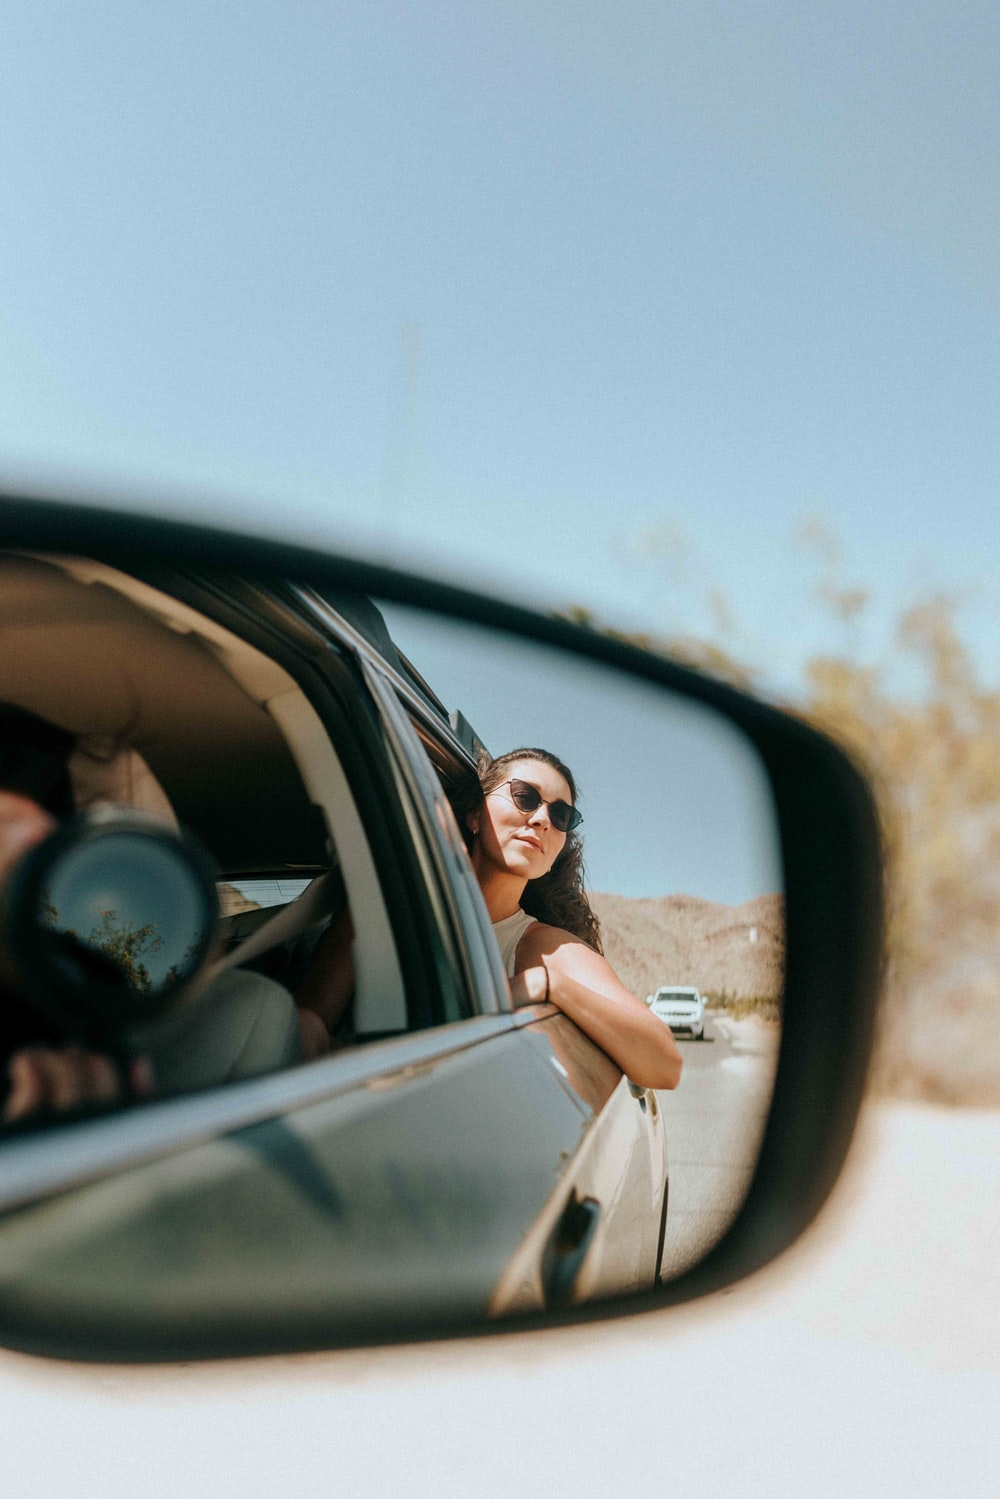 woman in white shirt and brown skirt wearing black sunglasses driving car during daytime